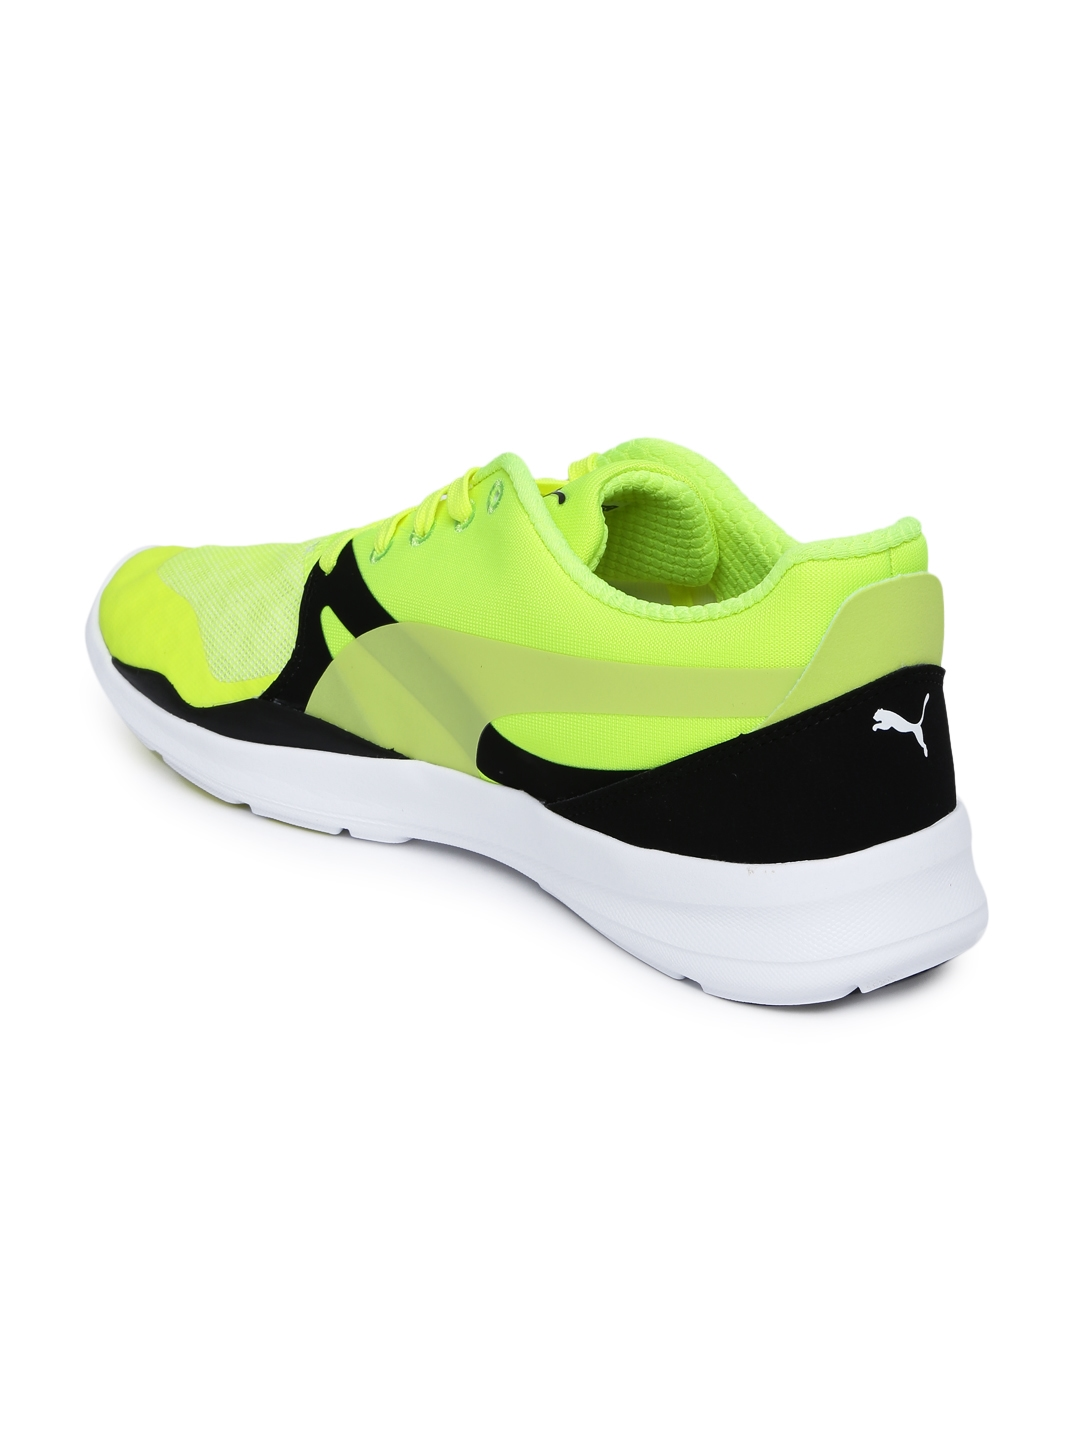 4cfbc843a02841 Buy Puma Men Neon Green Duplex Evo Sneakers - Casual Shoes for Men ...